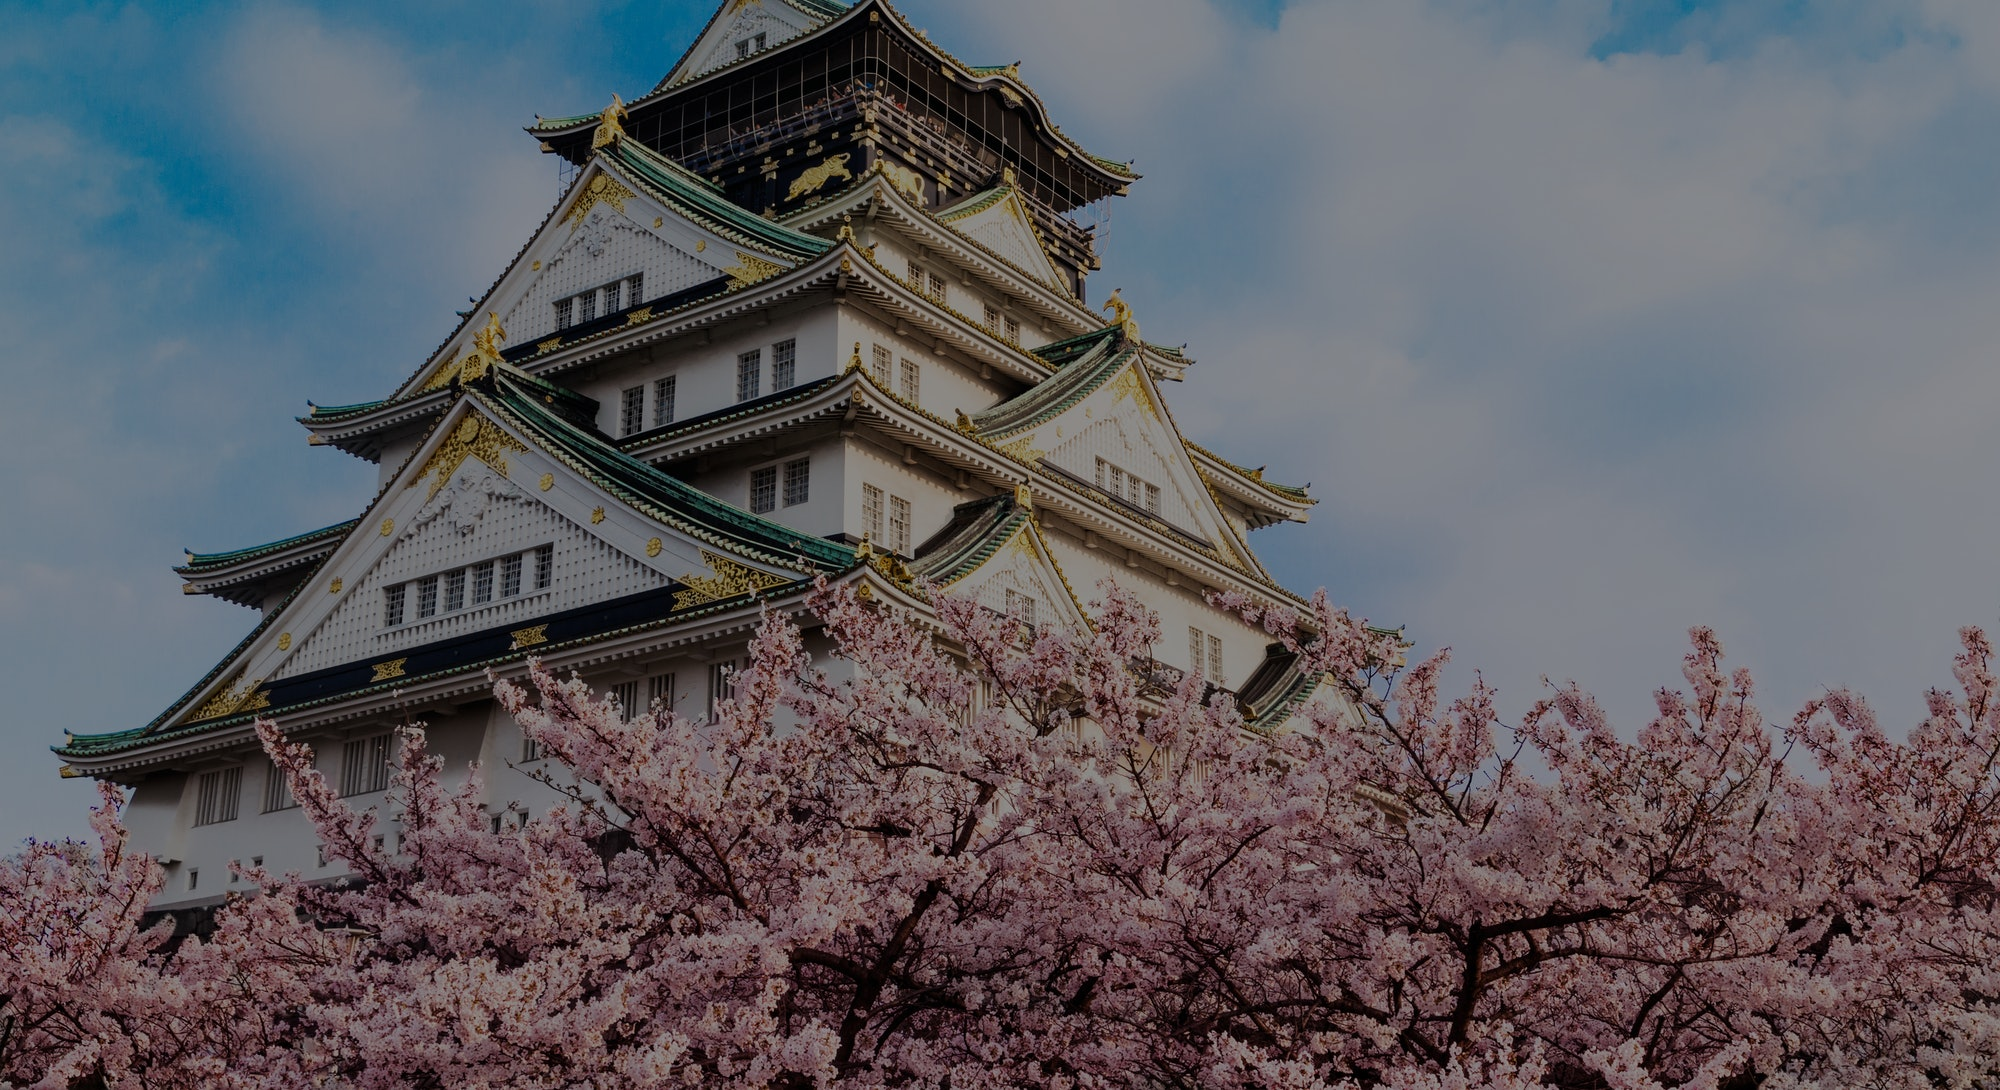 Osaka castle with cherry blossom. Japan, April. Spring icon view.